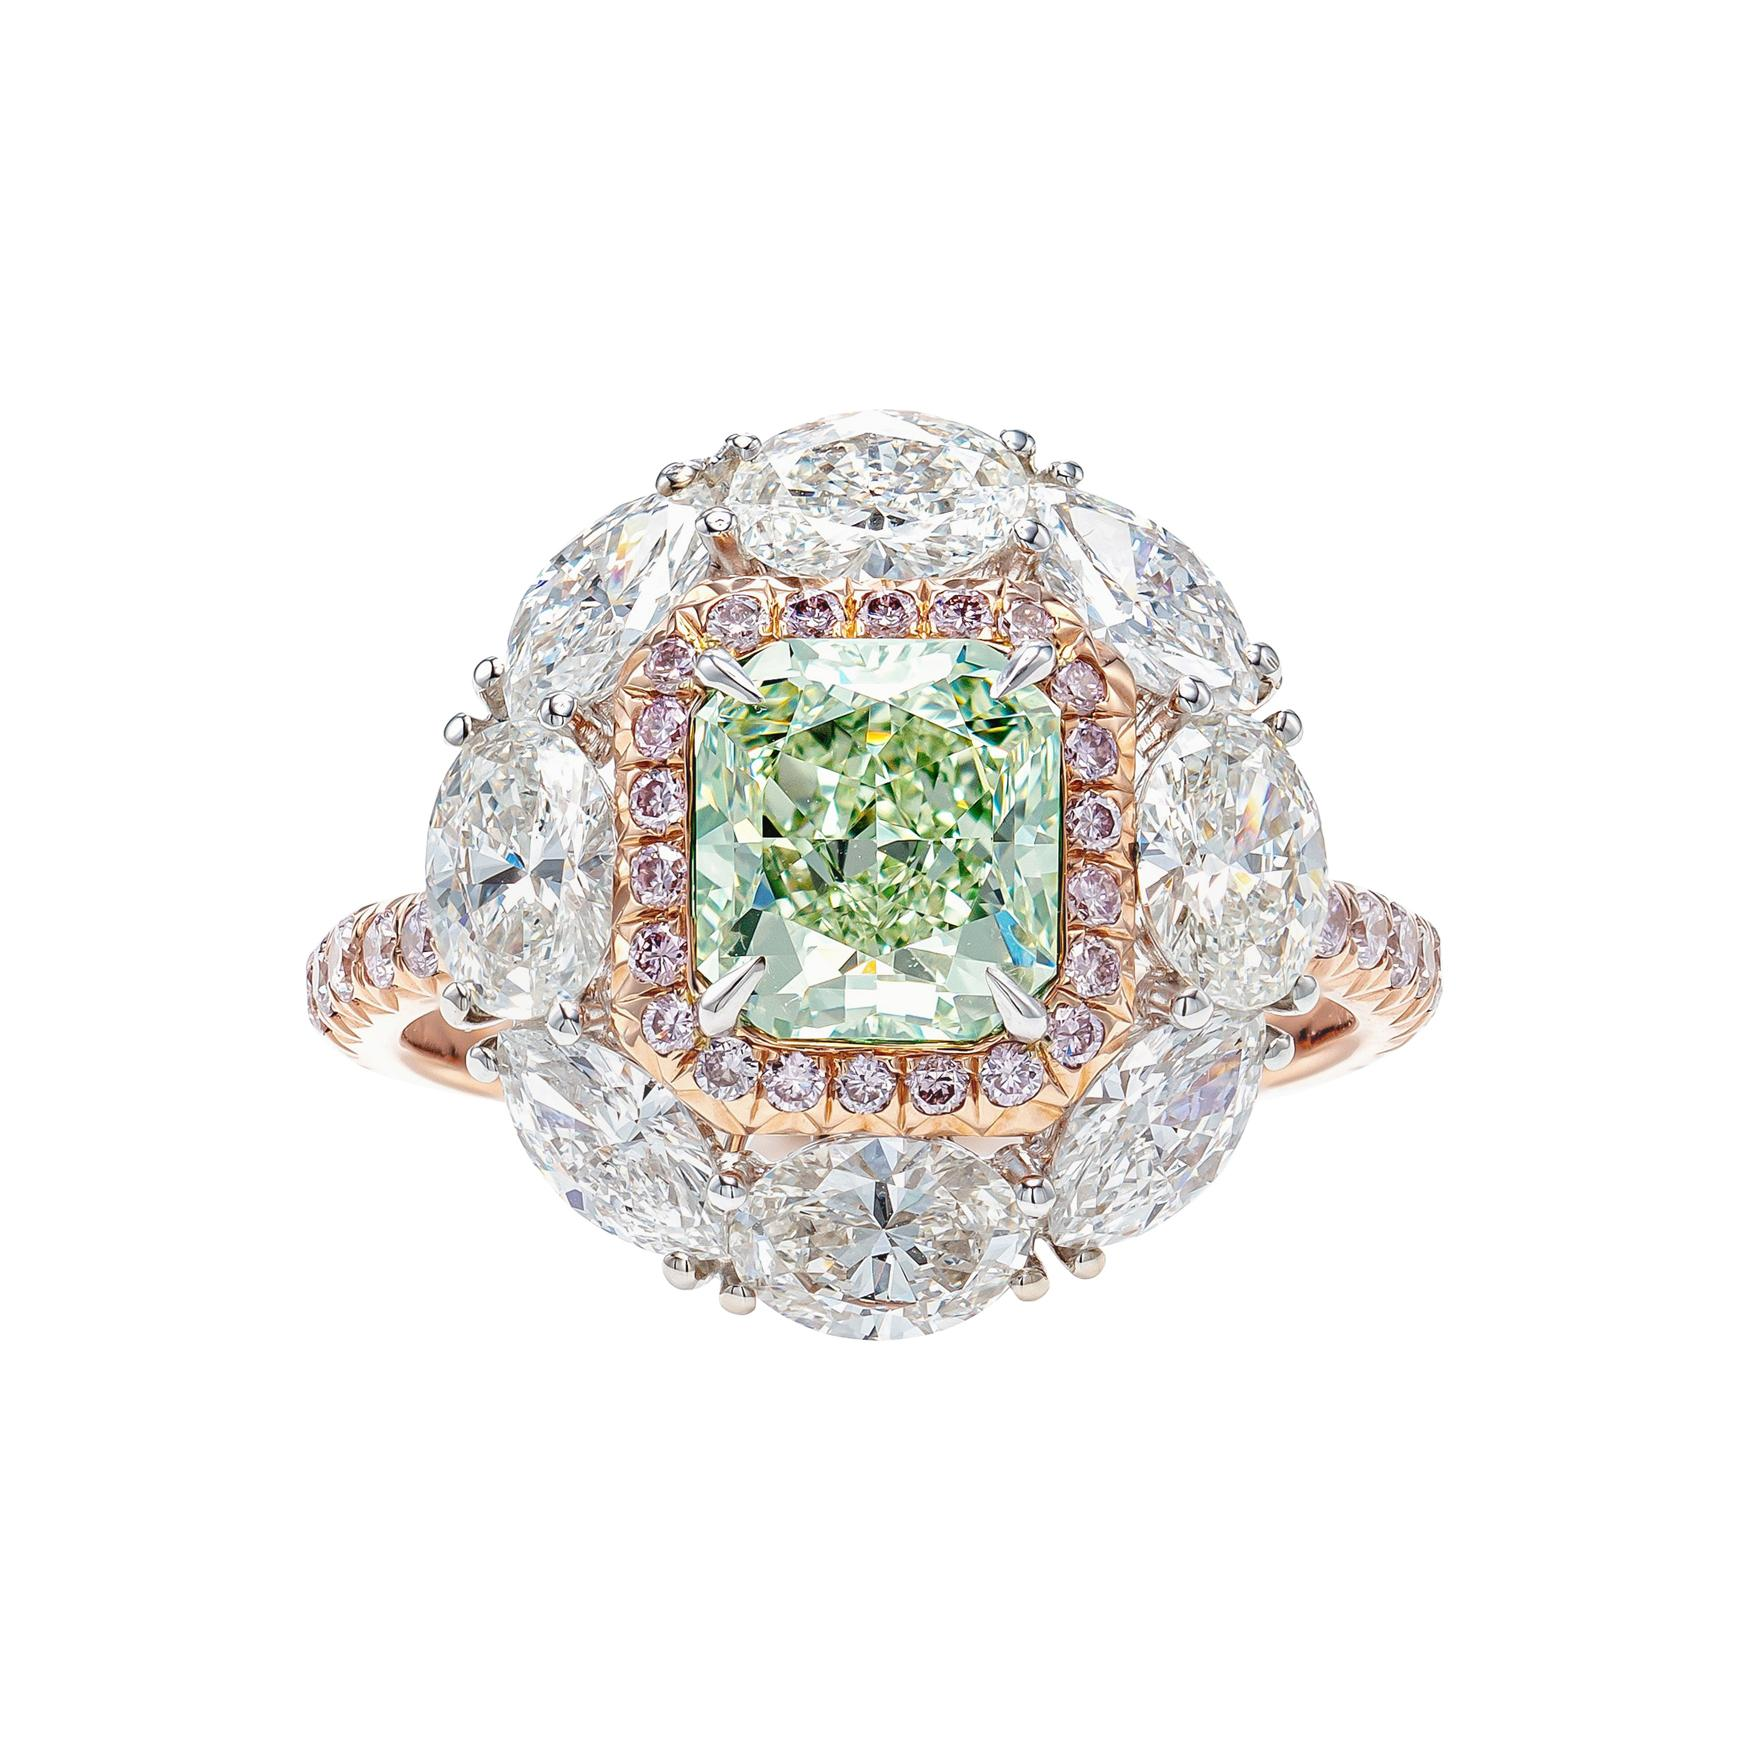 GIA Certified 3.3 Carat Fancy Yellow Green and Pink Diamond Ring in 18K Gold